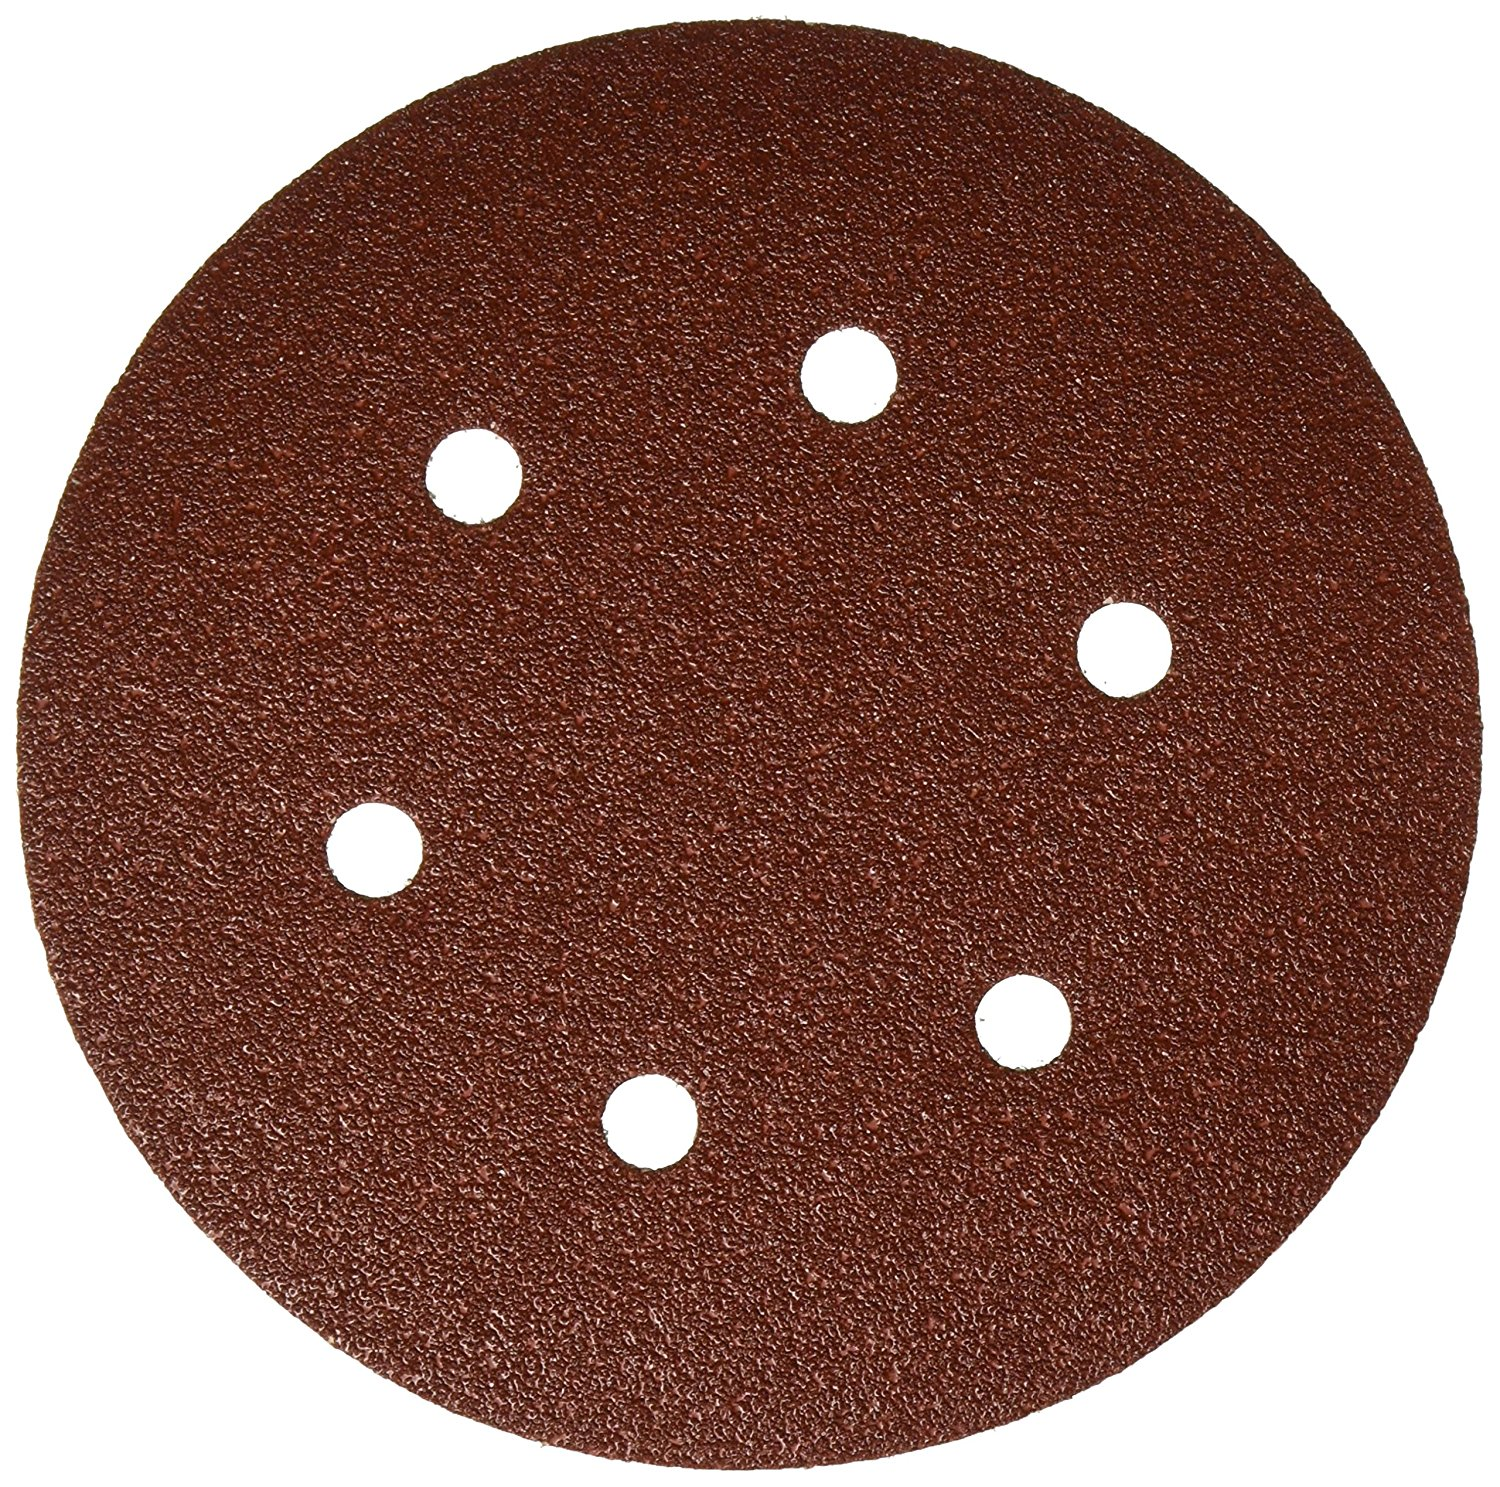 6 Inch 6 Hole Hook and Loop Wood Sanding Discs 25 Pack by Bosch